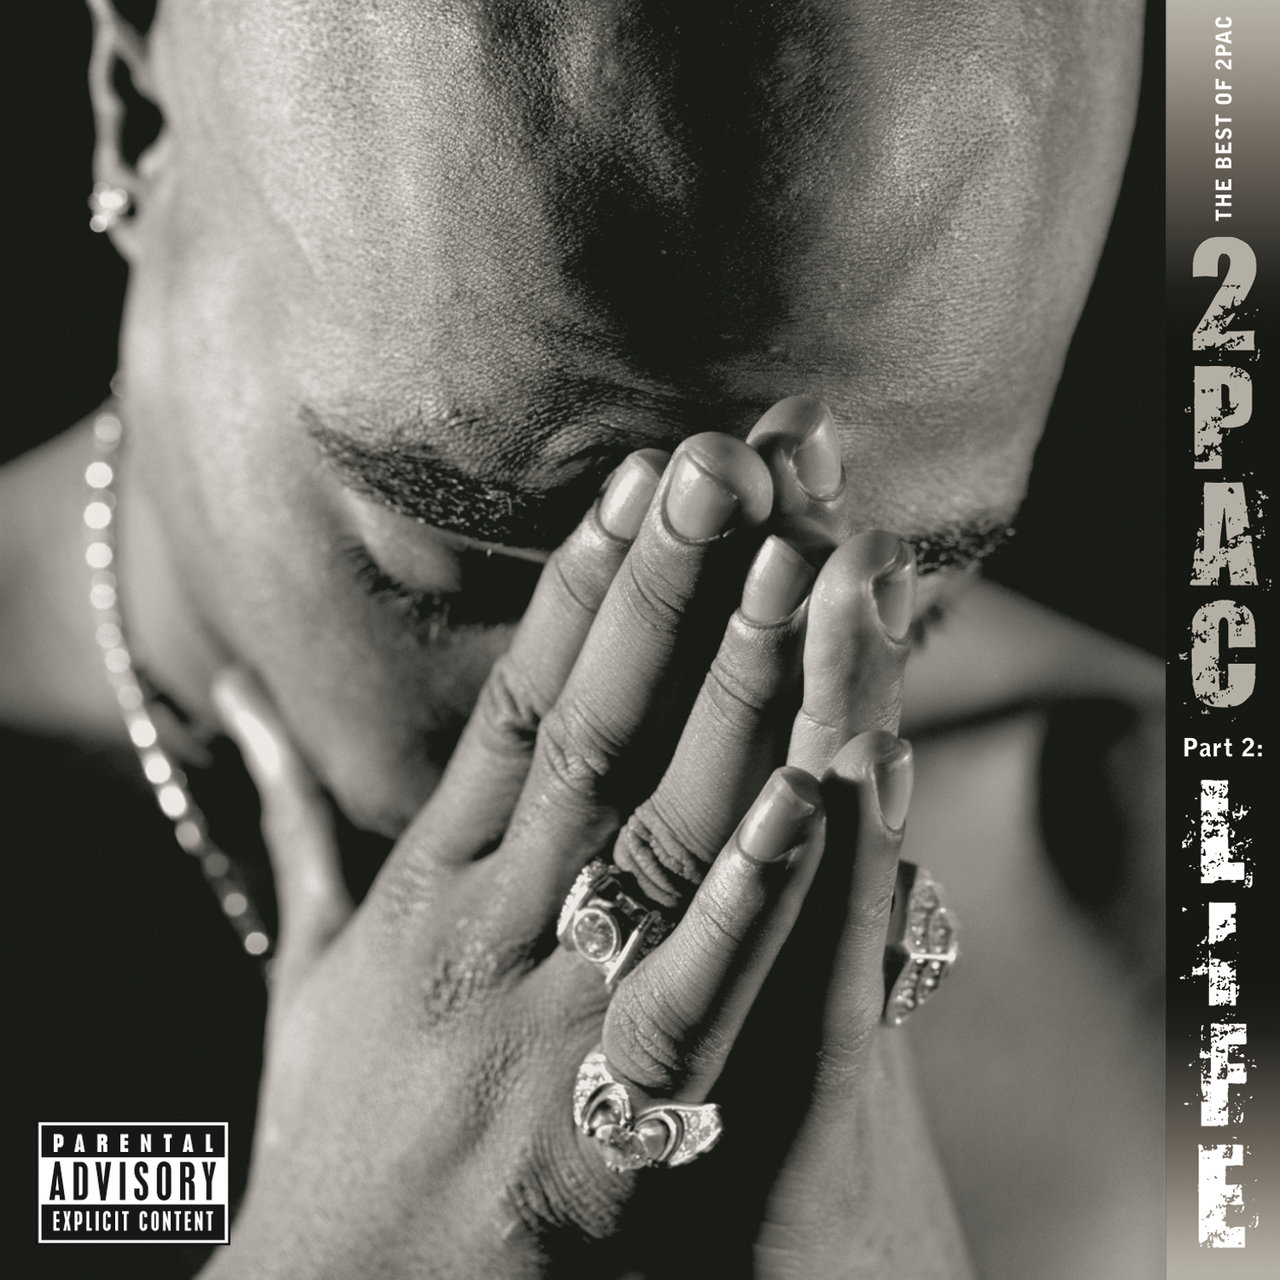 2Pac - The Best Of 2Pac Pt. 2 - Life